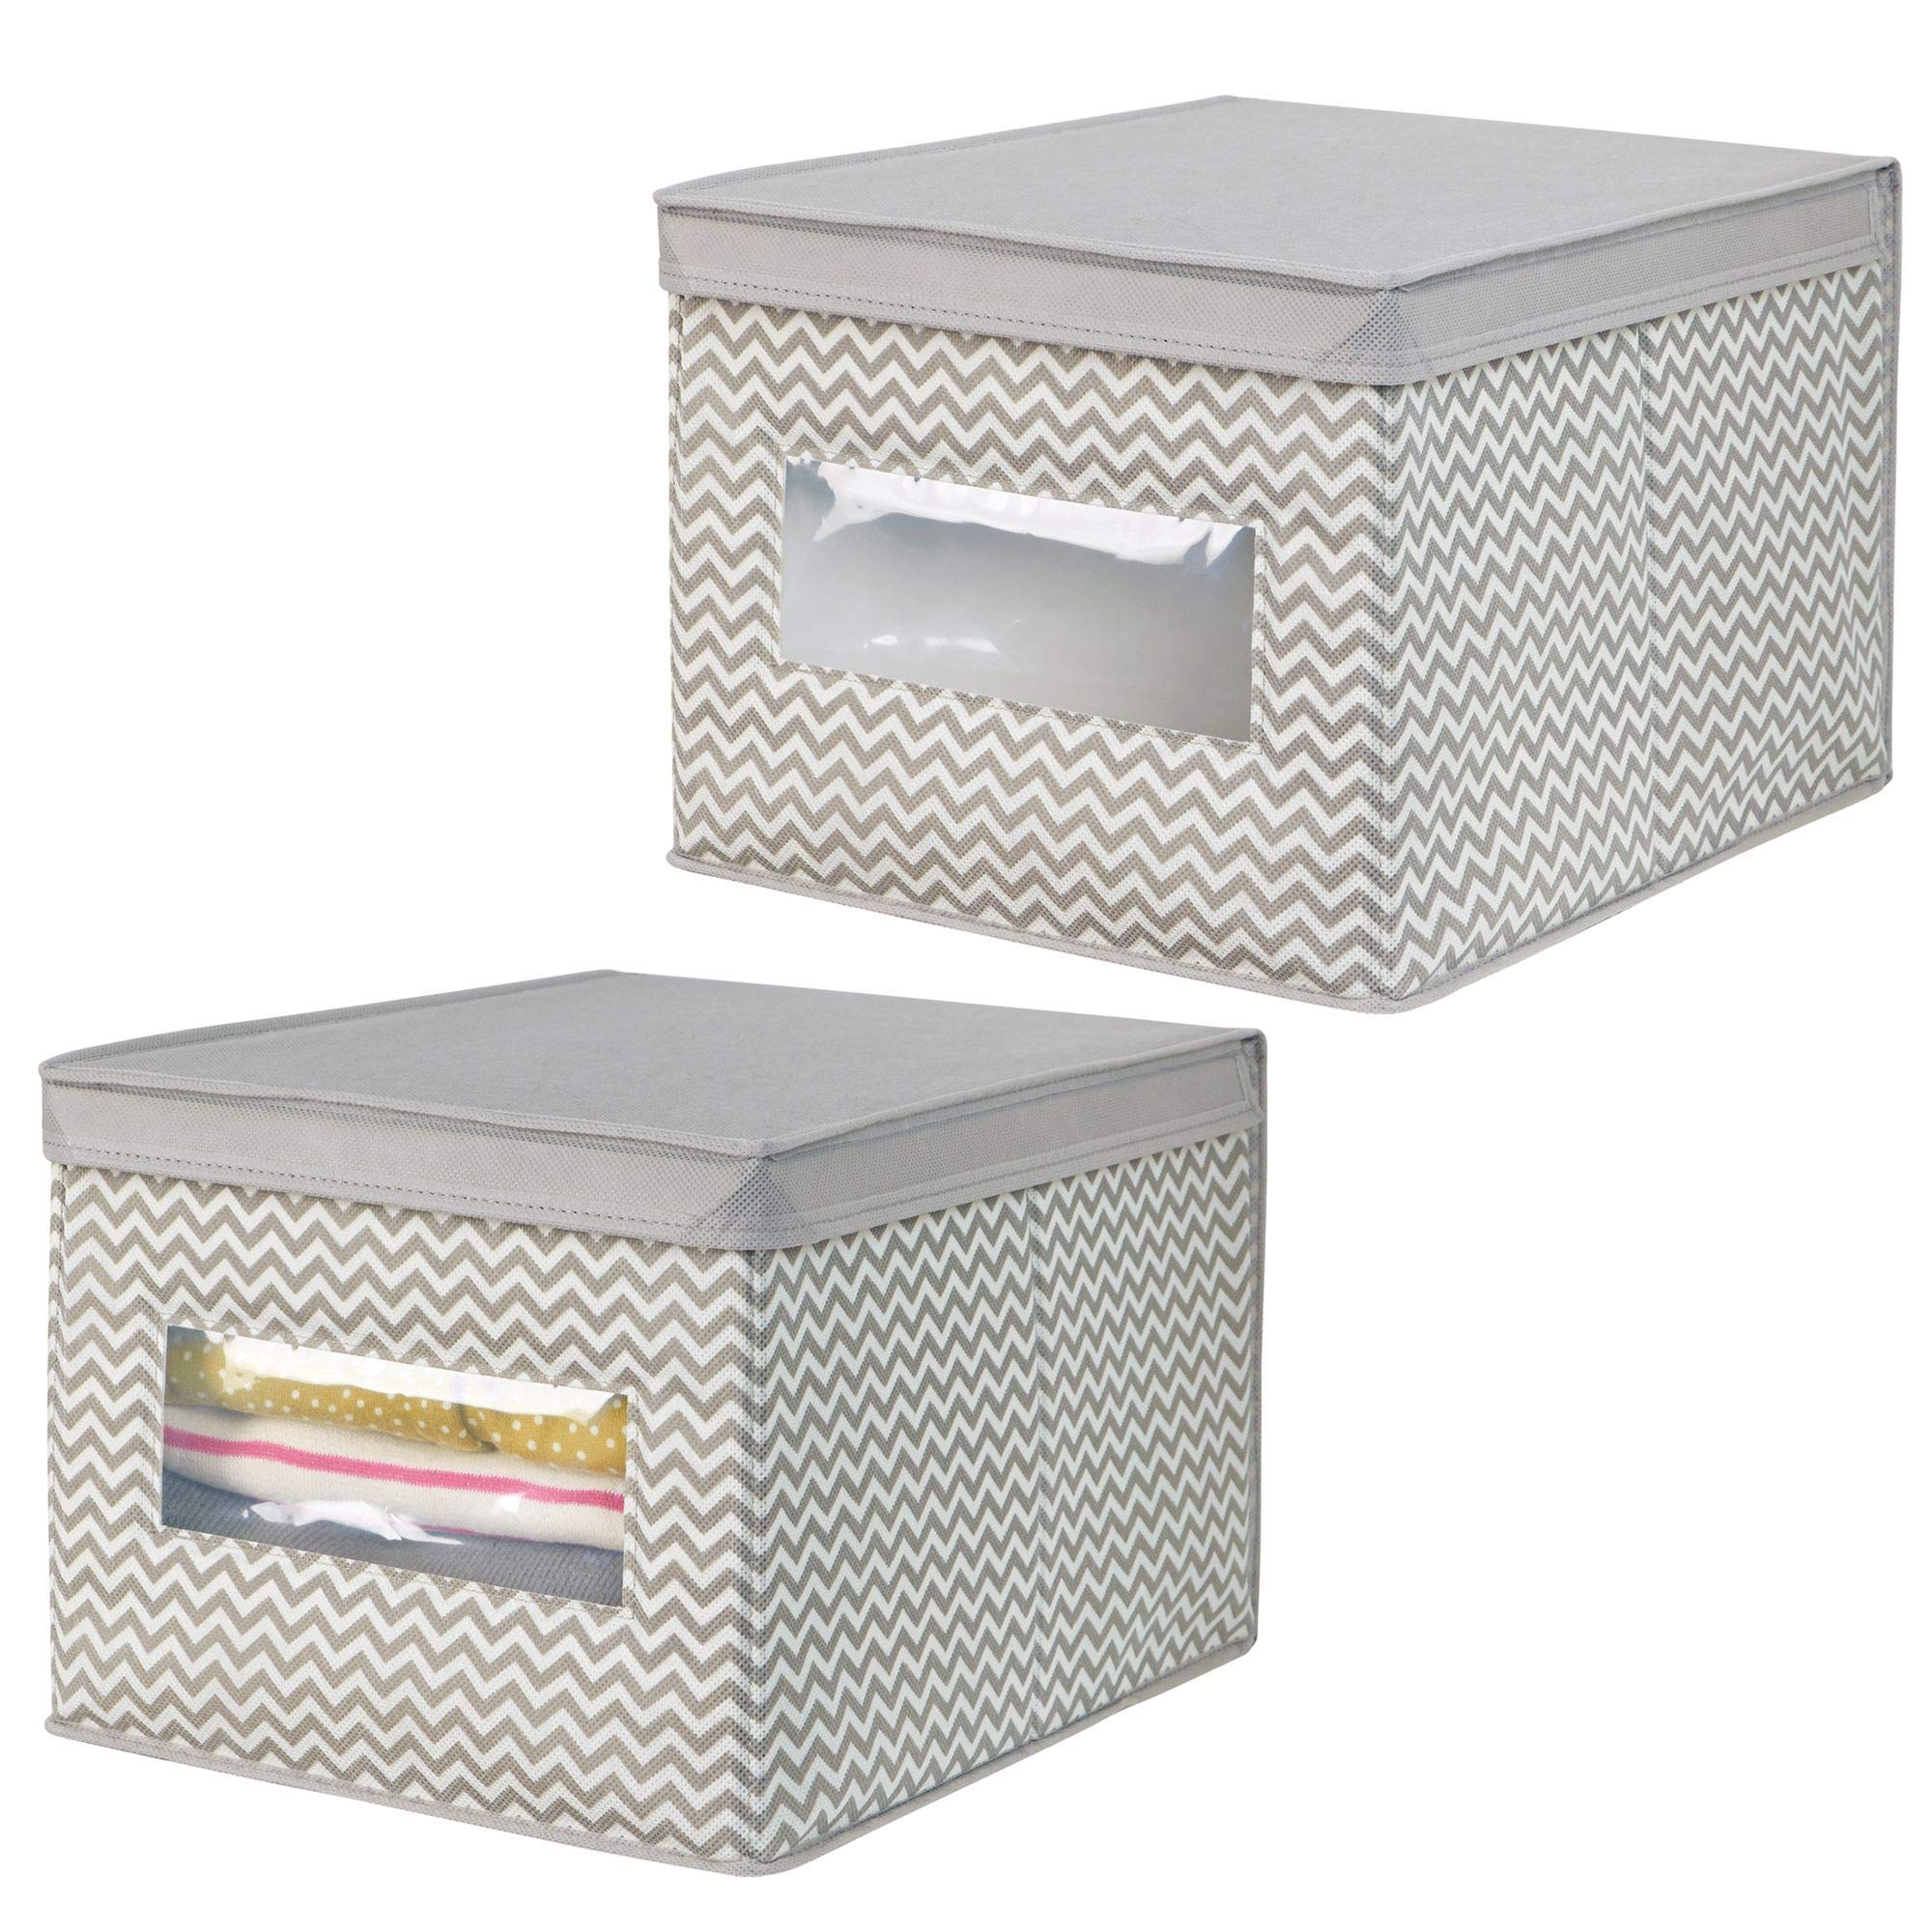 mDesign Soft Stackable Fabric Closet Storage Organizer Holder Box - Clear Window, Attached Hinged Lid for Bedroom, Hallway, Entryway Closets - Zig Zag Chevron Pattern - Large, Pack of 2, Taupe/Natural